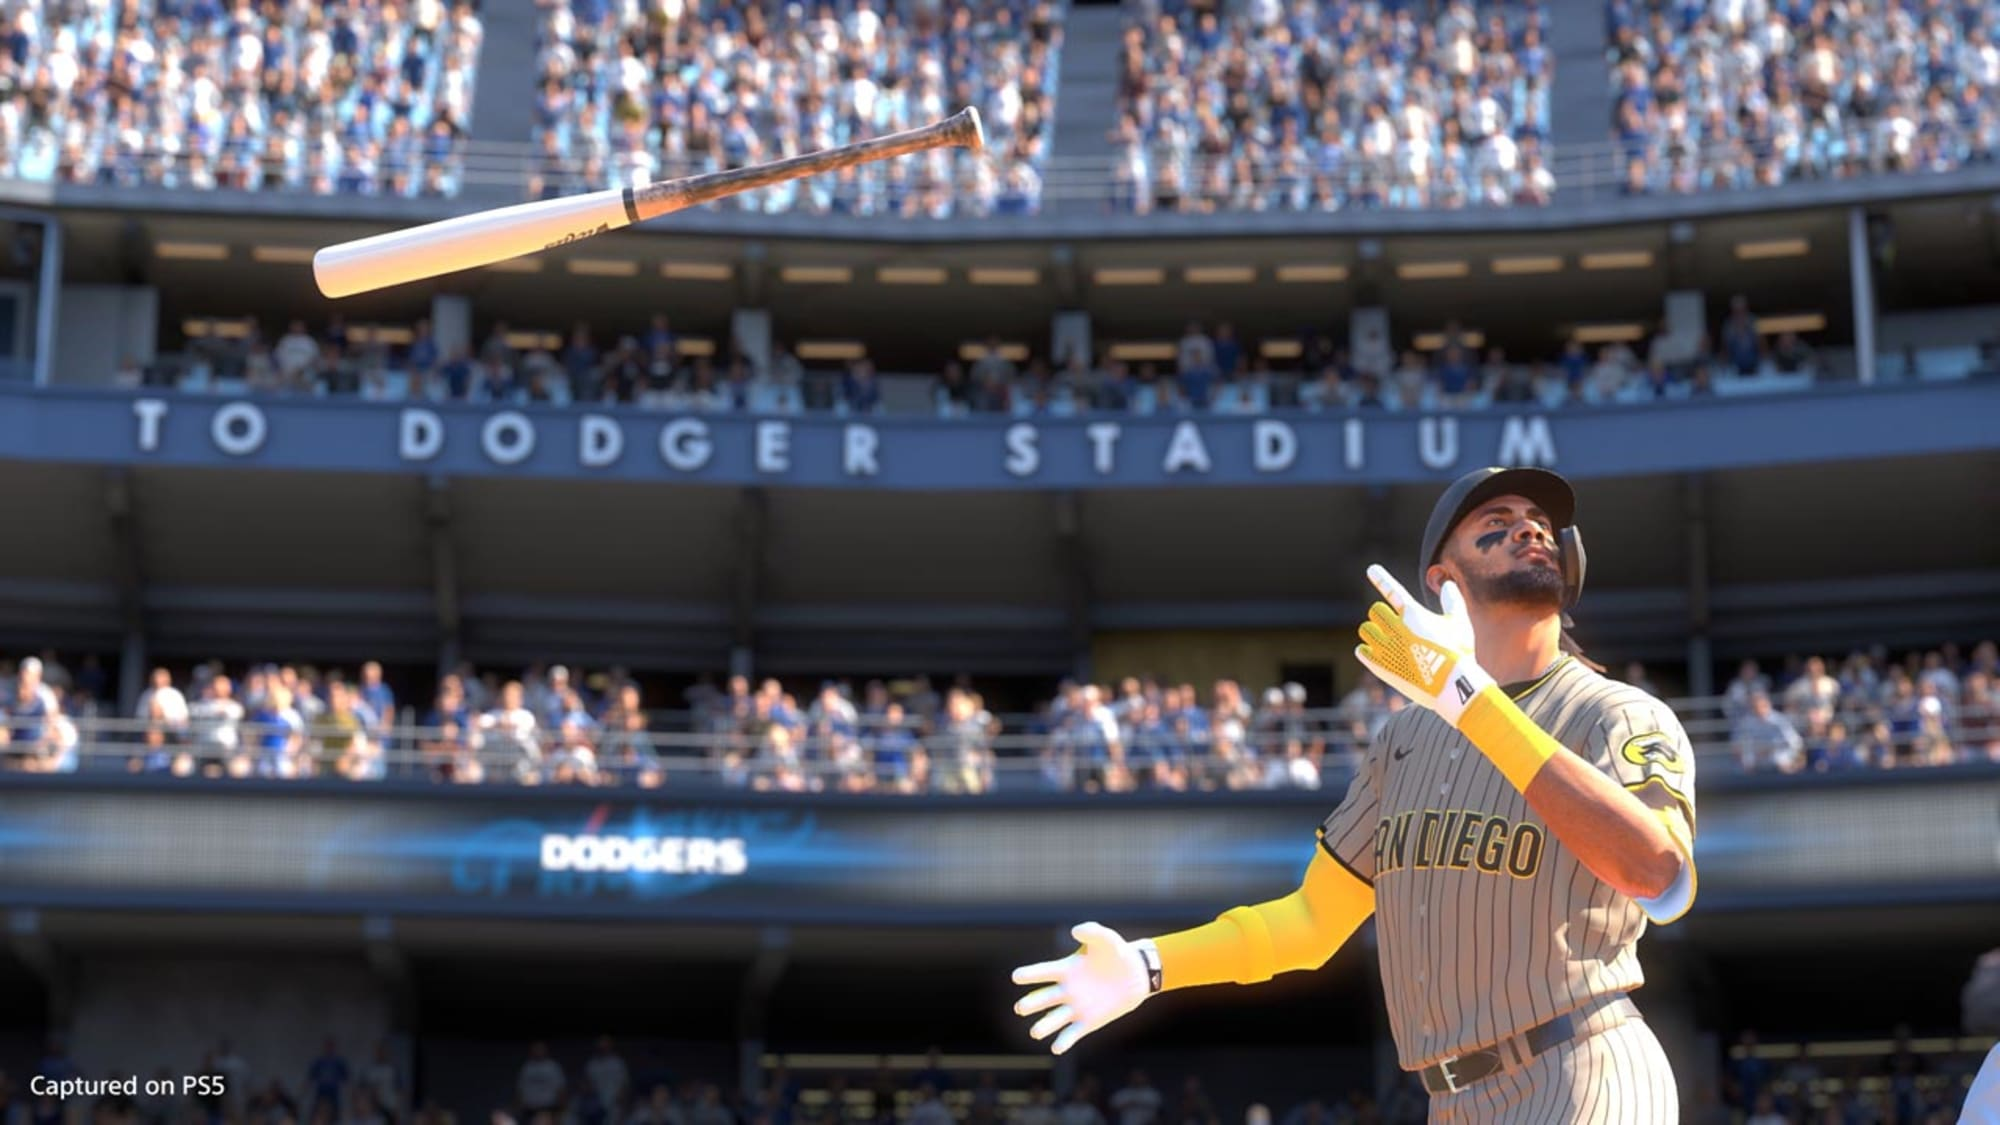 MLB The Show 21: Team overall ratings and rankings revealed